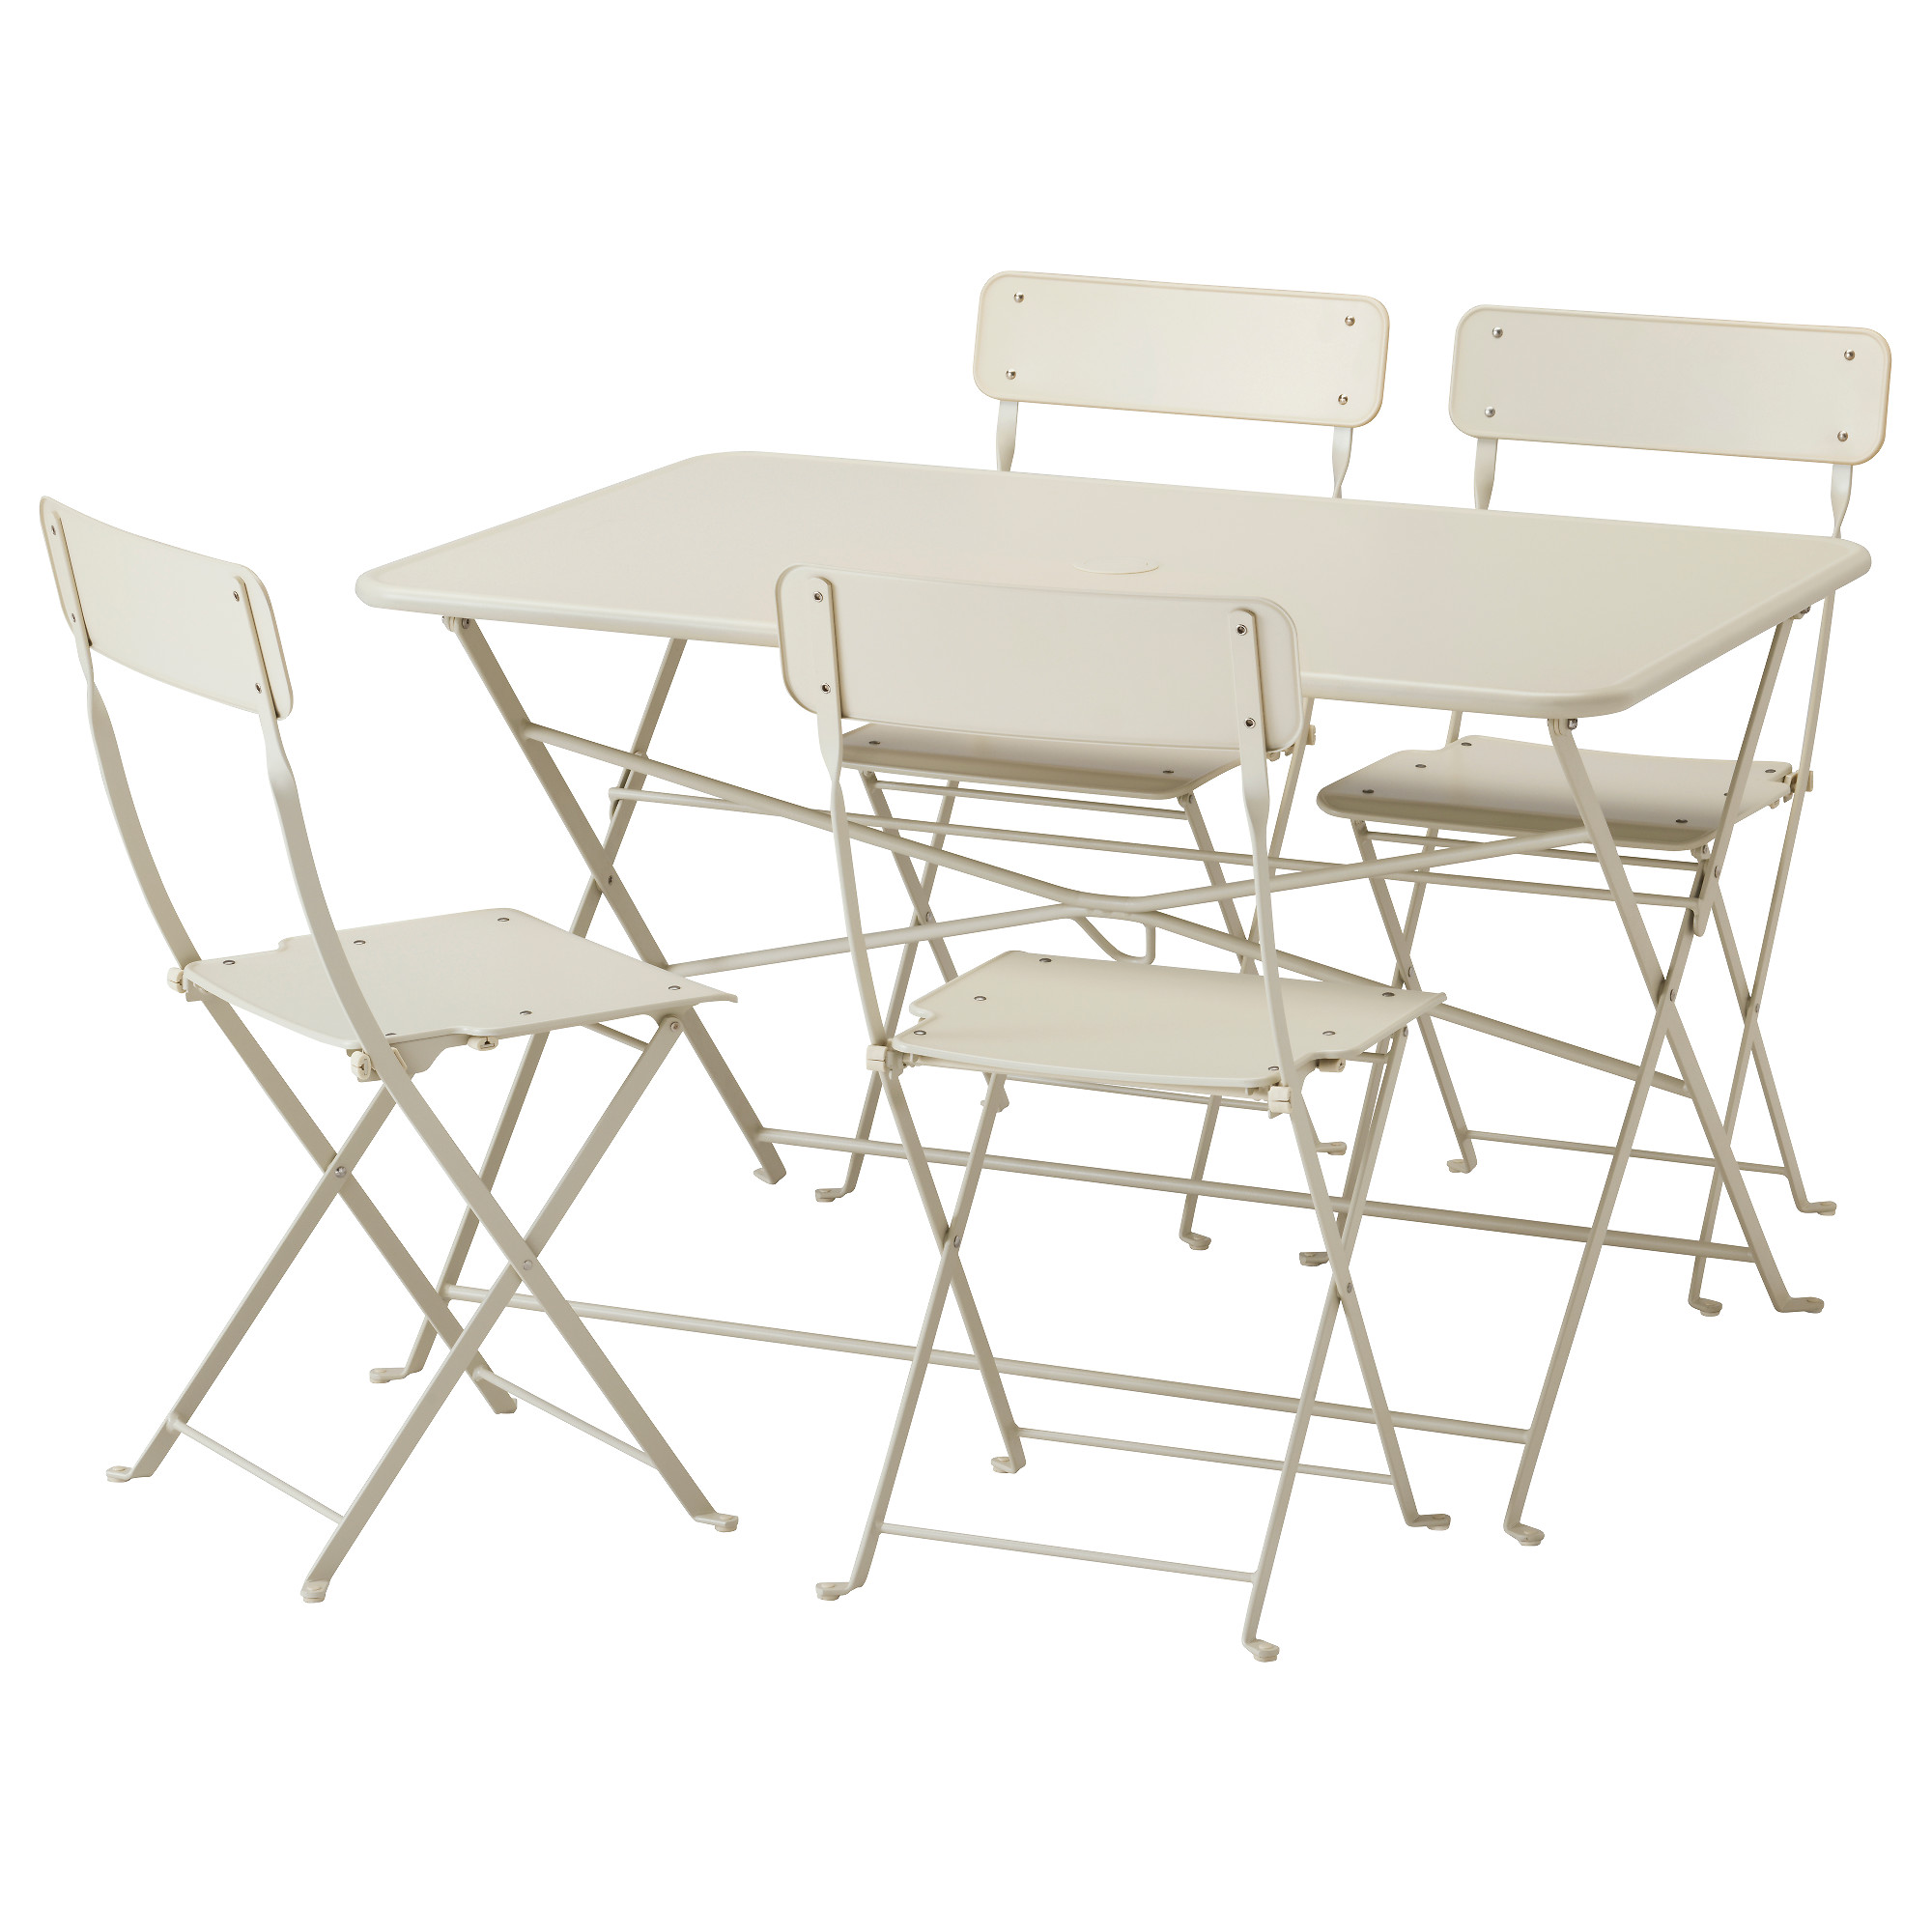 Saltholmen table 4 folding chairs outdoor saltholmen beige ikea